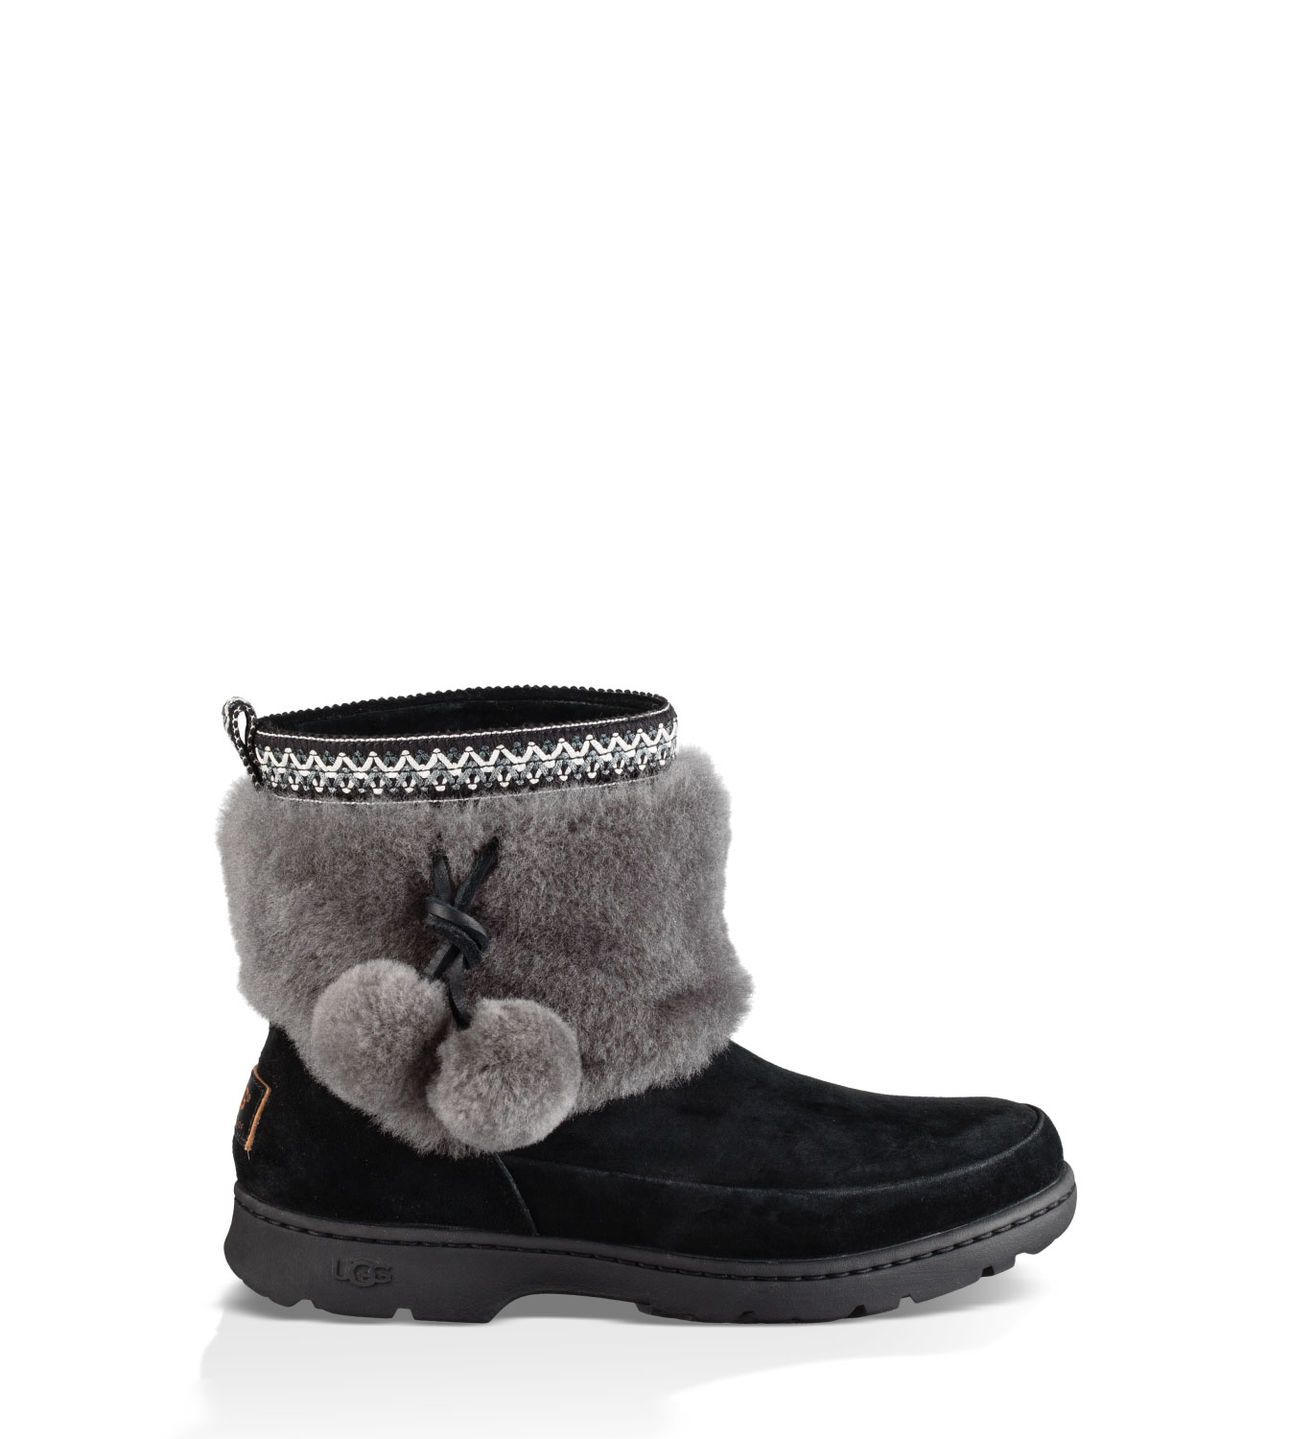 ab3cb5e7eb7 Women's Share this product Brie | fall/winter apparel | Uggs, Boots ...